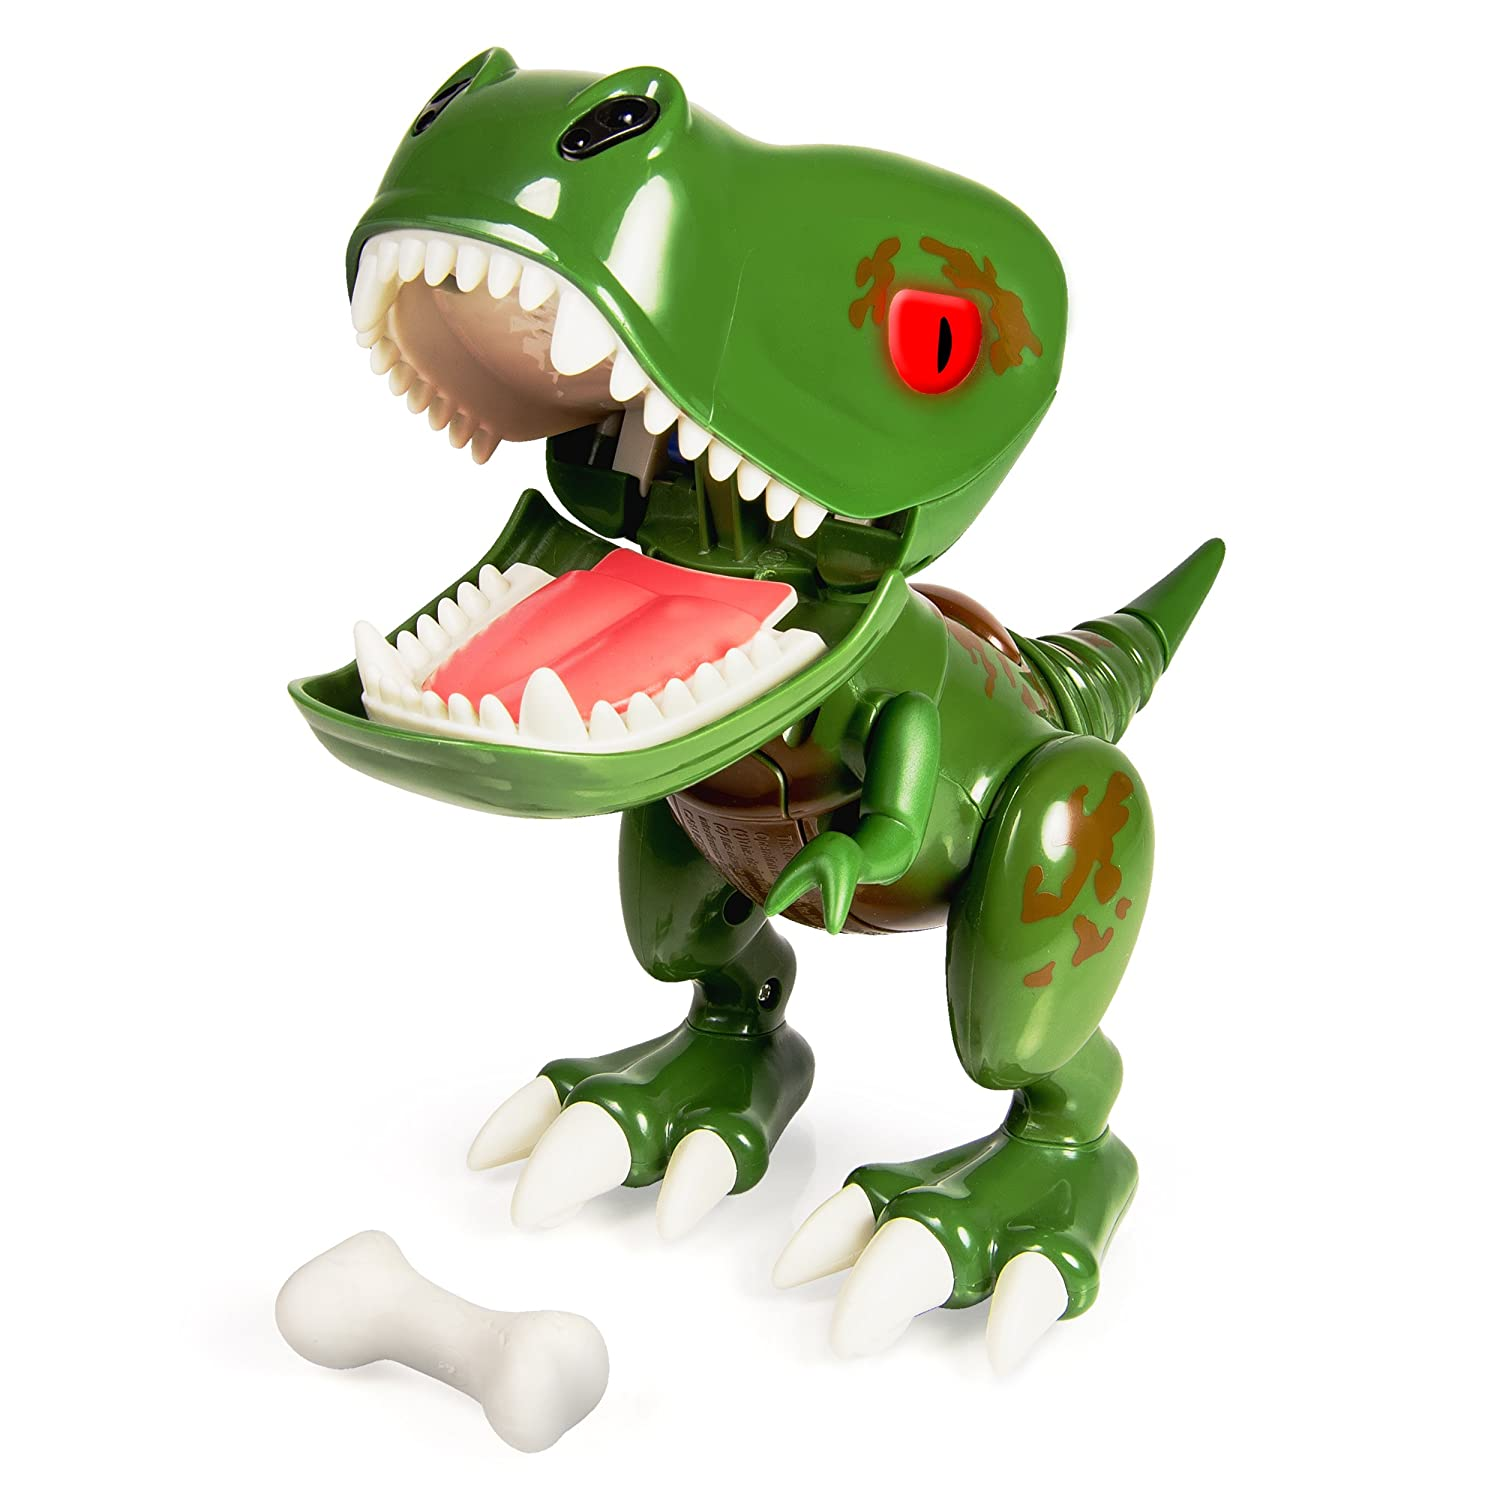 Dino Toys For Boys : Best toys for kids only the boys in